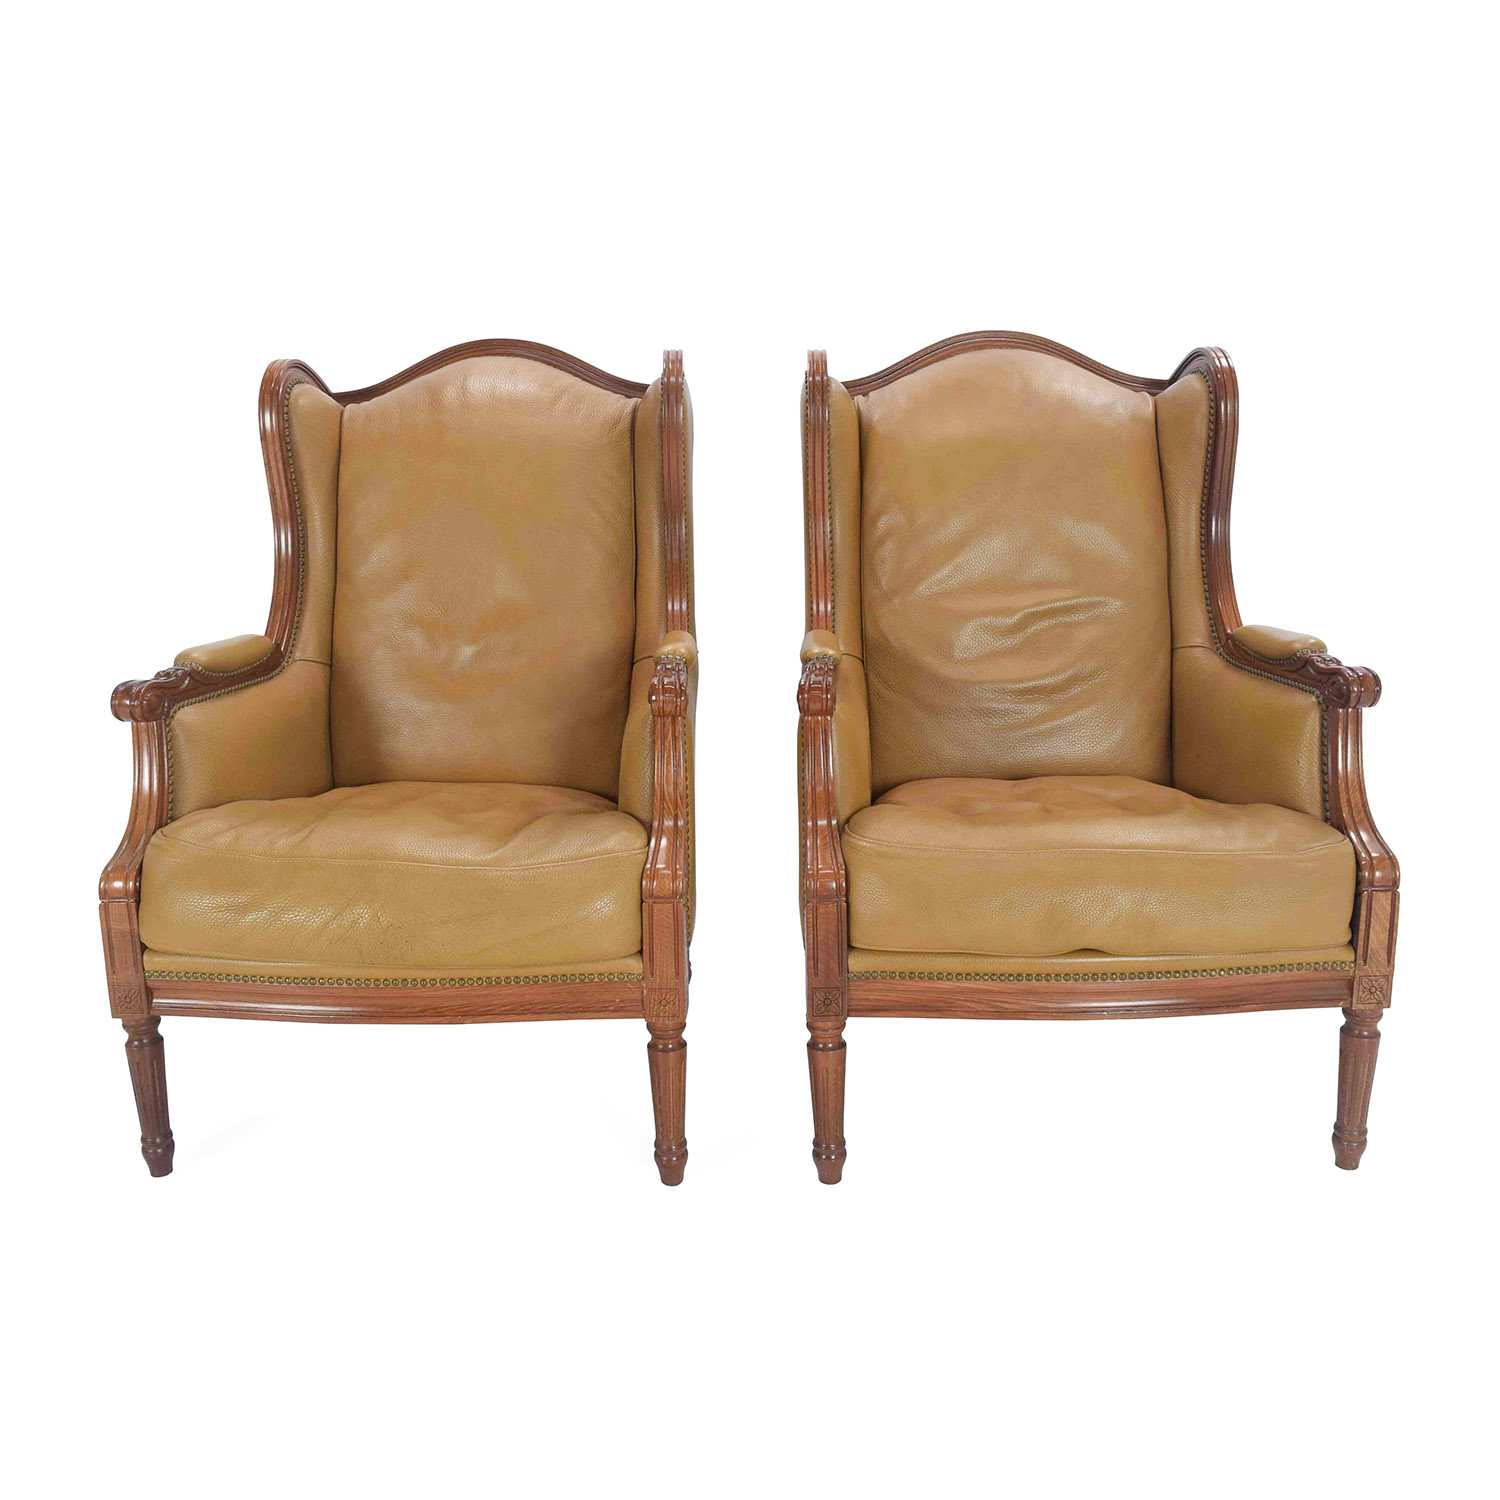 Antique Leather Chairs sale ... - 62% OFF - Antique Antique Leather Chairs / Chairs